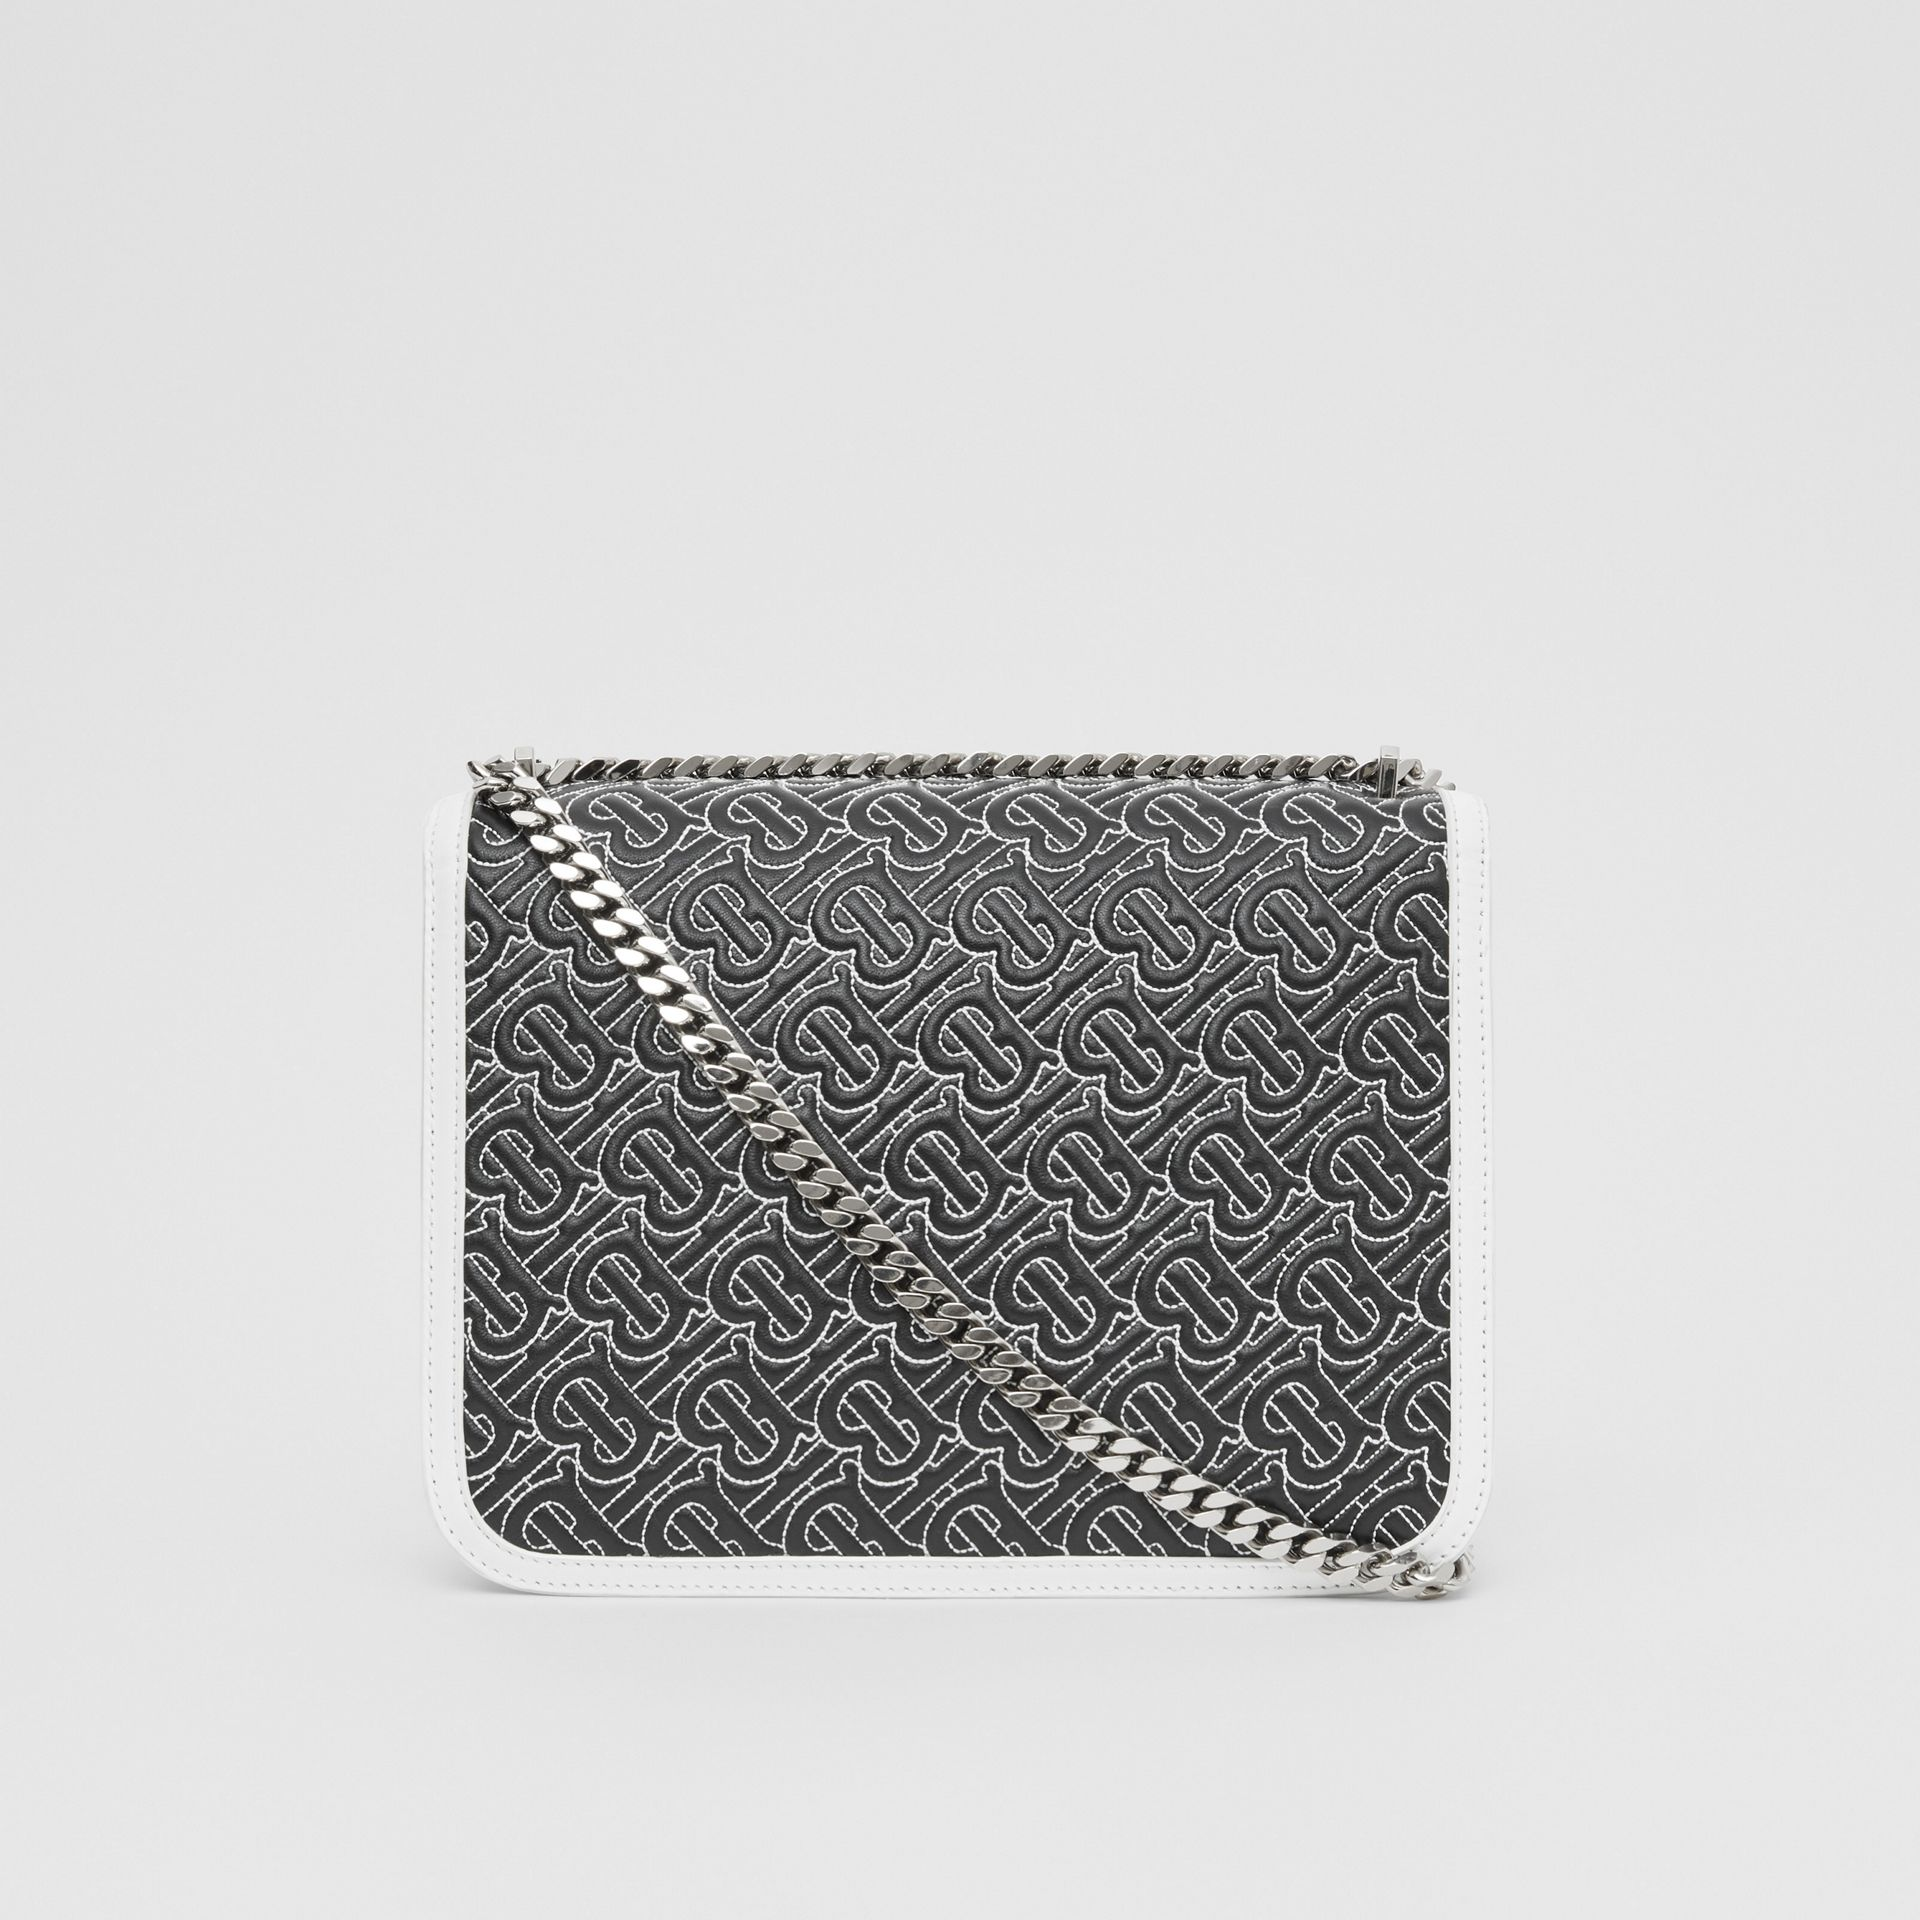 Medium Quilted Monogram Lambskin TB Bag in Black | Burberry - gallery image 7